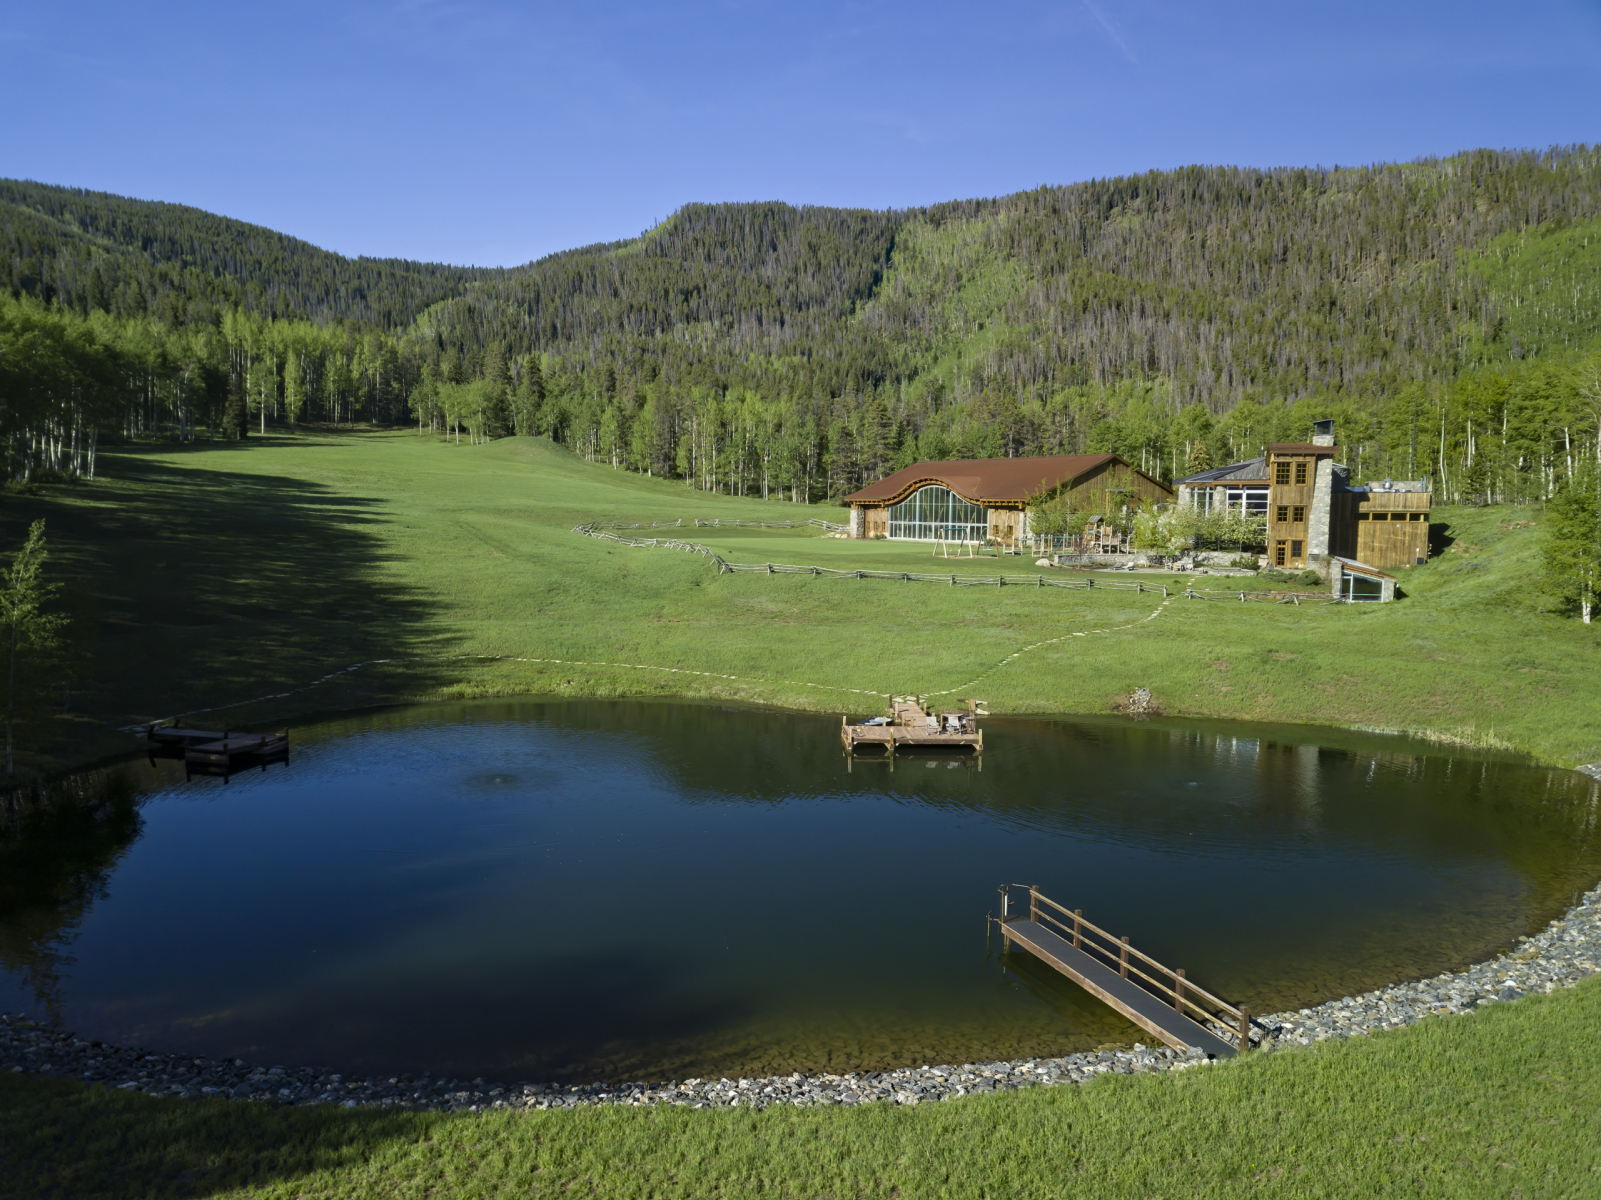 Vail-MLS-Final-Images-reordered-Malia-009-scaled